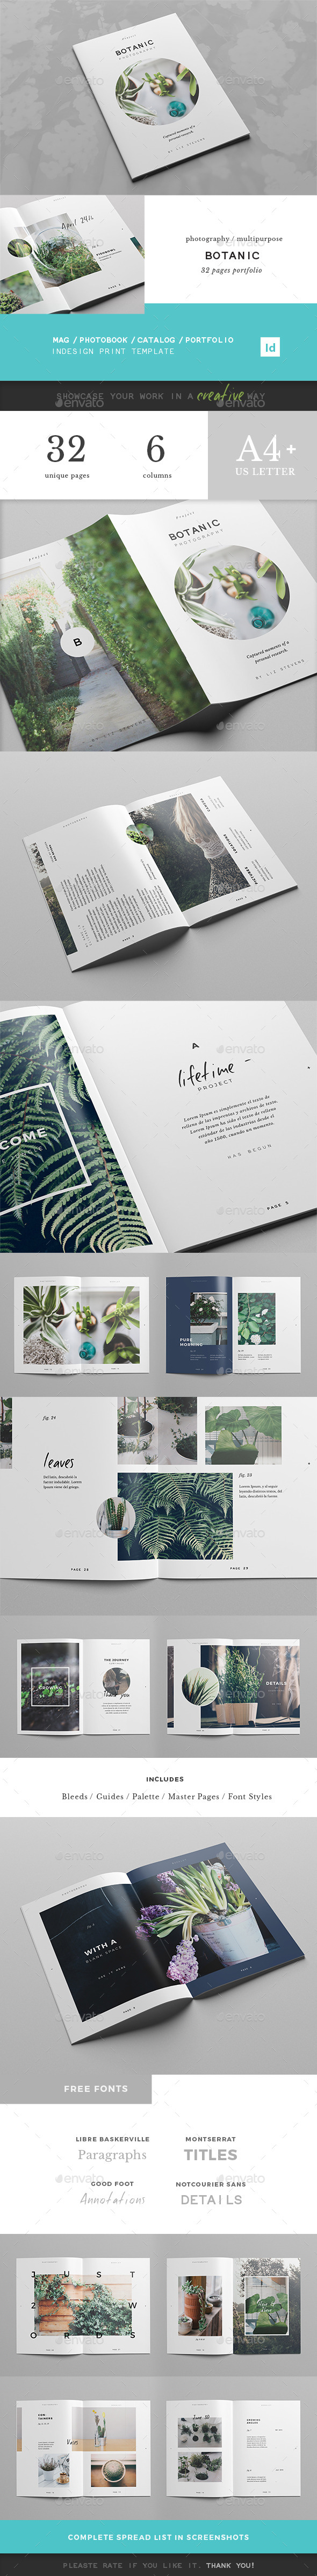 GraphicRiver Botanic Multipurpose Creative Portfolio 11370049